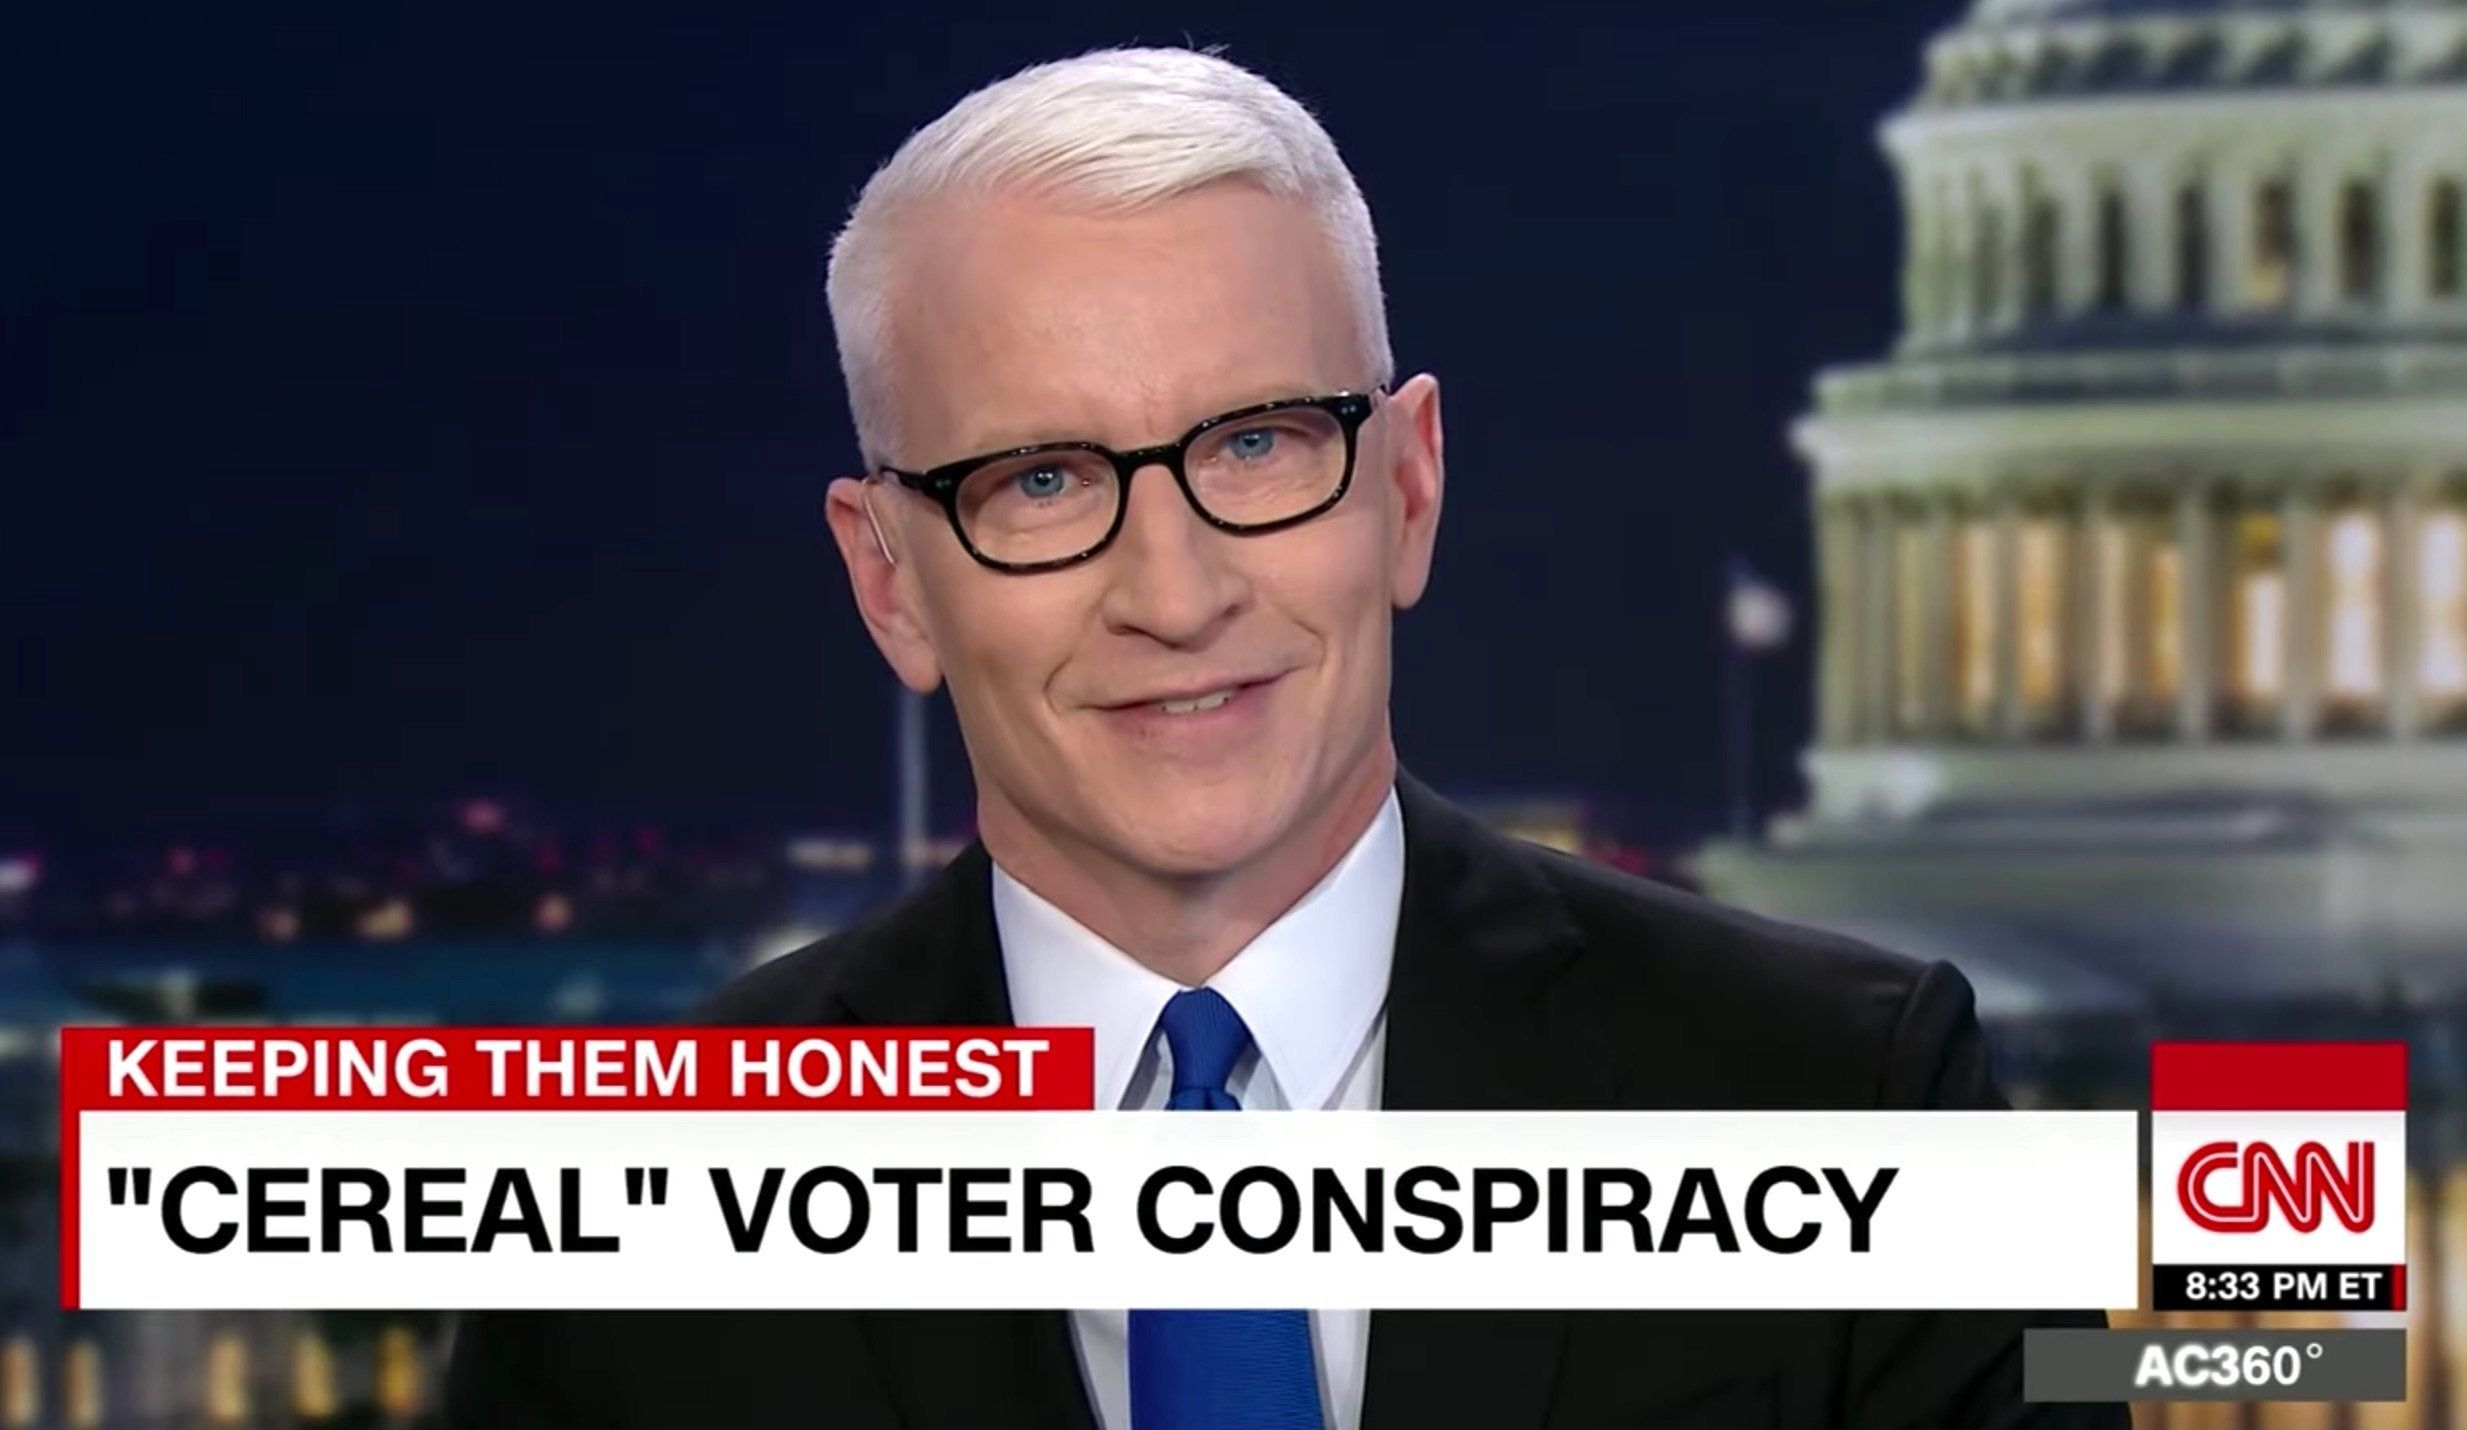 Anderson Cooper Mocks Trump's New Claims With Circus Clown